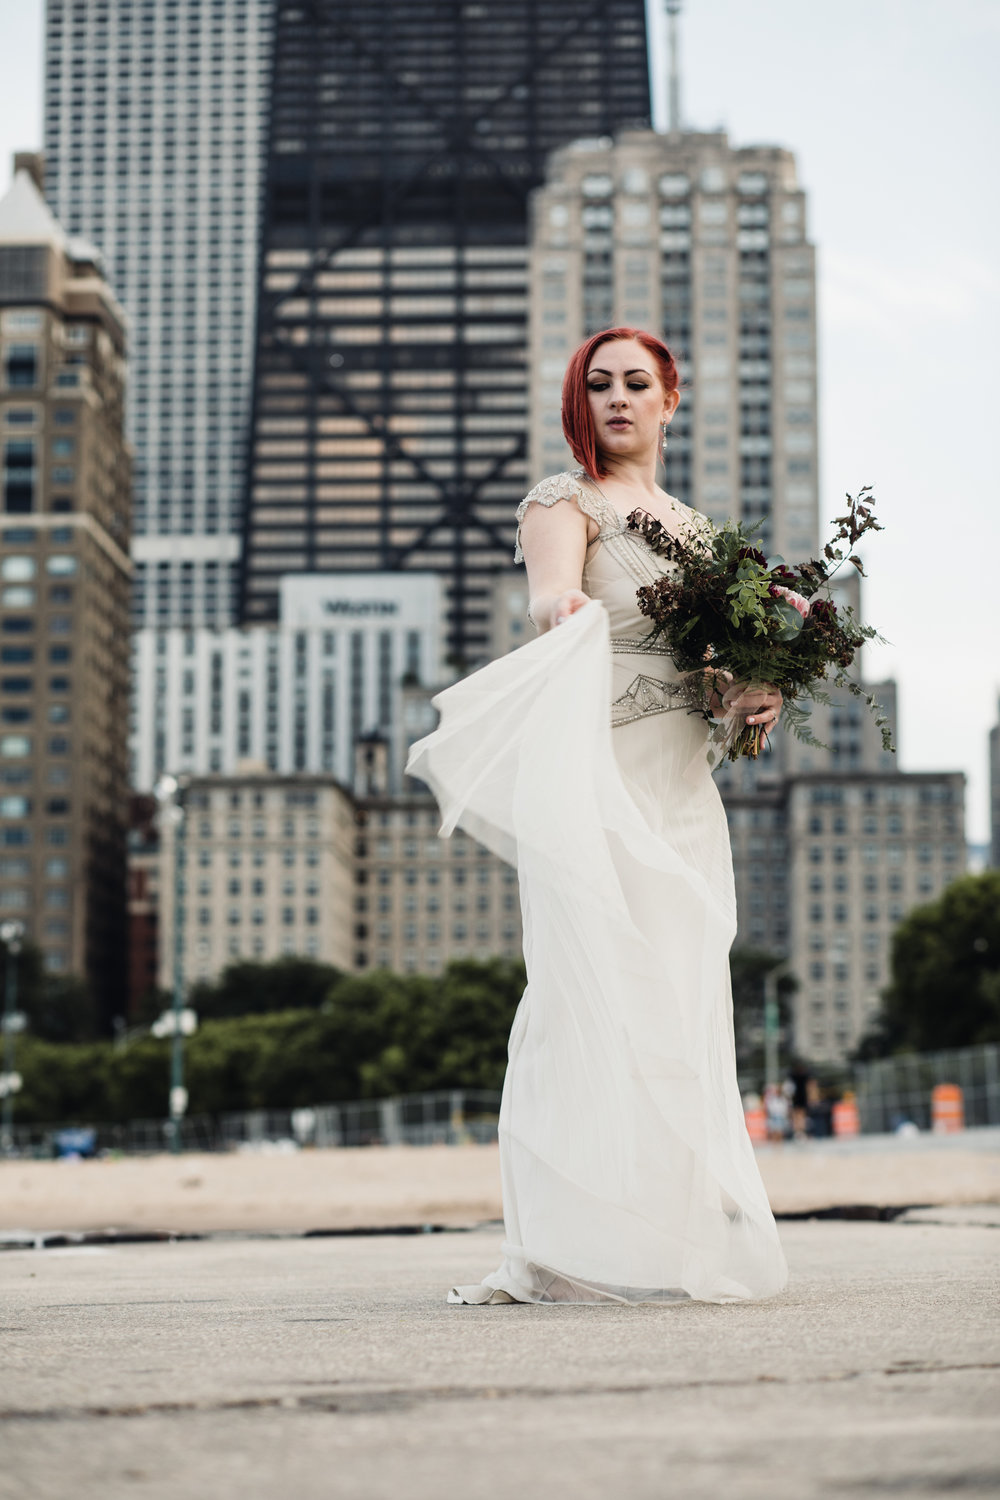 Chicago IL - Gown By Gwendolynne - Florals by Cora Flora - Photography by Hove Photography